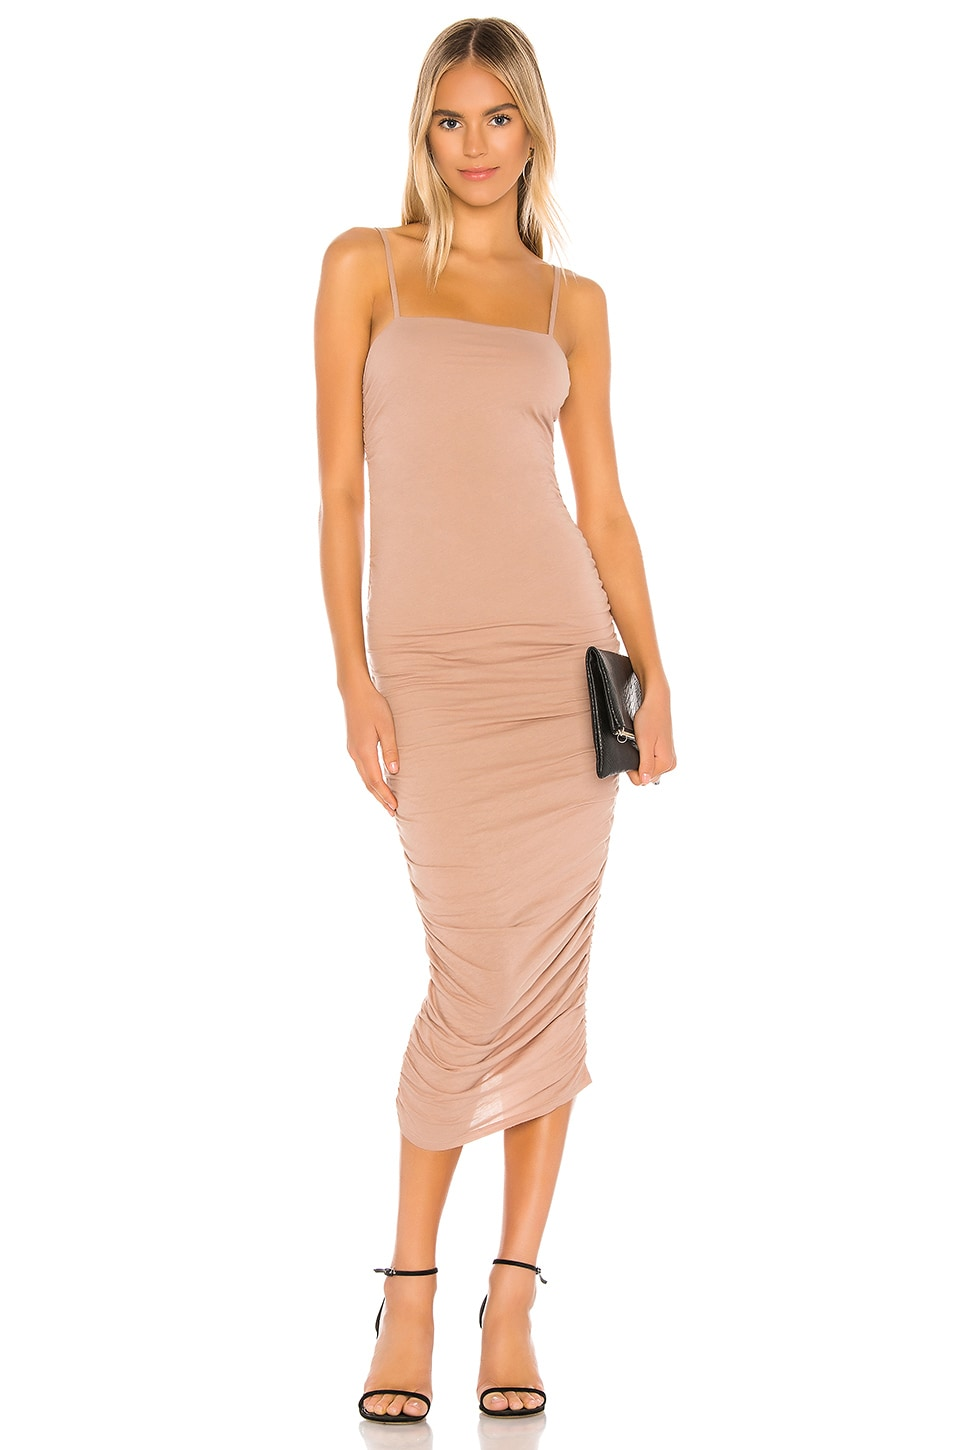 Lovers + Friends Kori Midi Dress in Nude